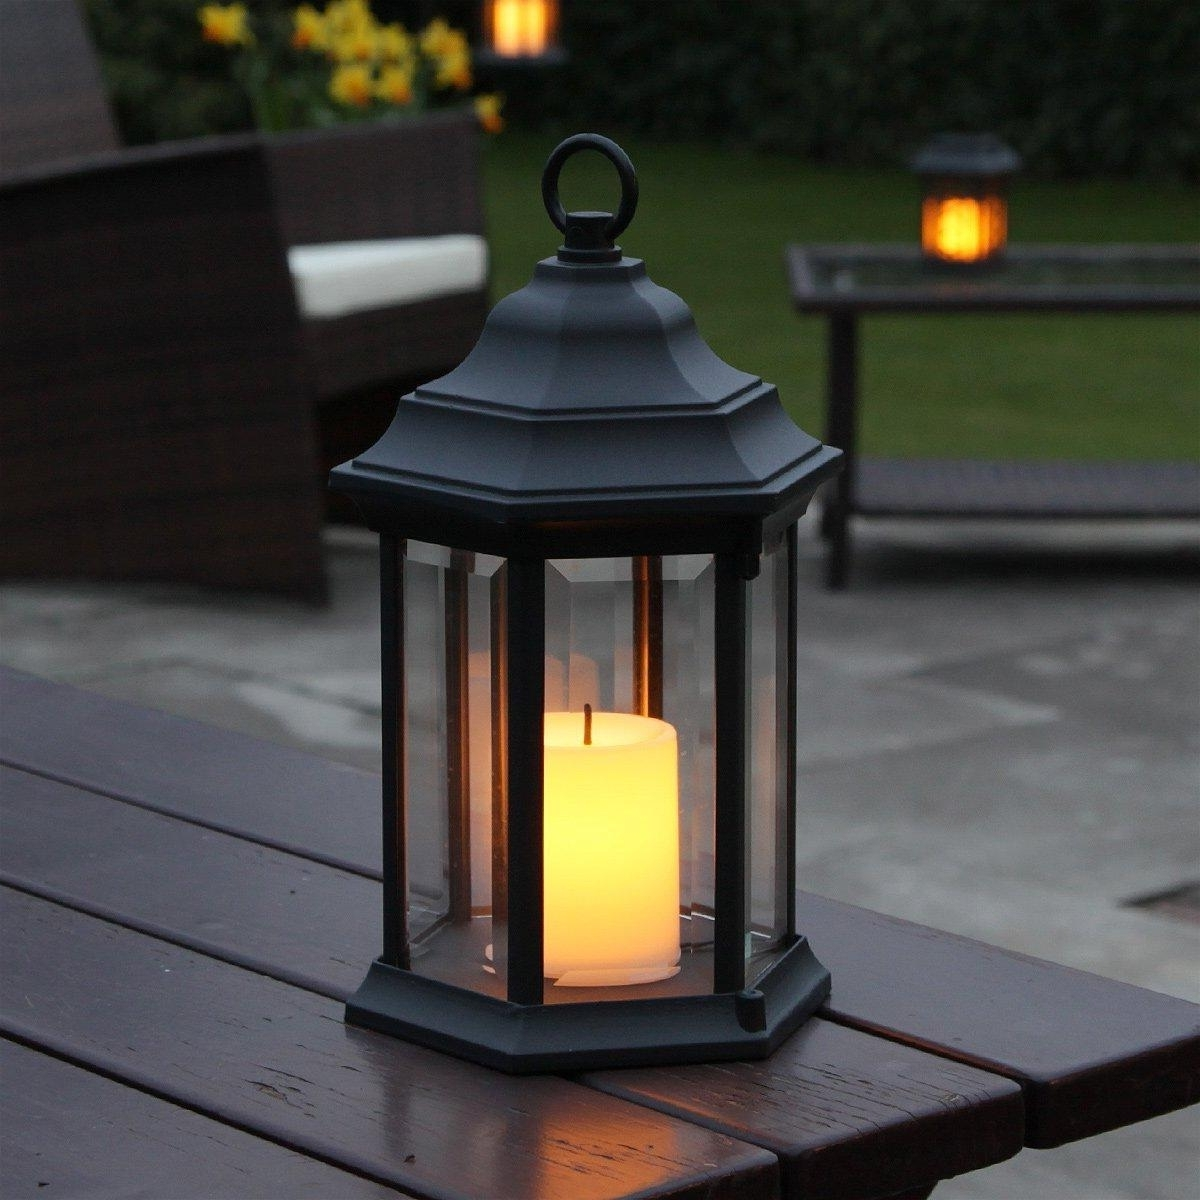 Outdoor Lanterns With Battery Operated Candles Intended For Well Liked Outdoor Lighting For Sale – Outdoor Lights Prices, Brands & Review (View 12 of 20)